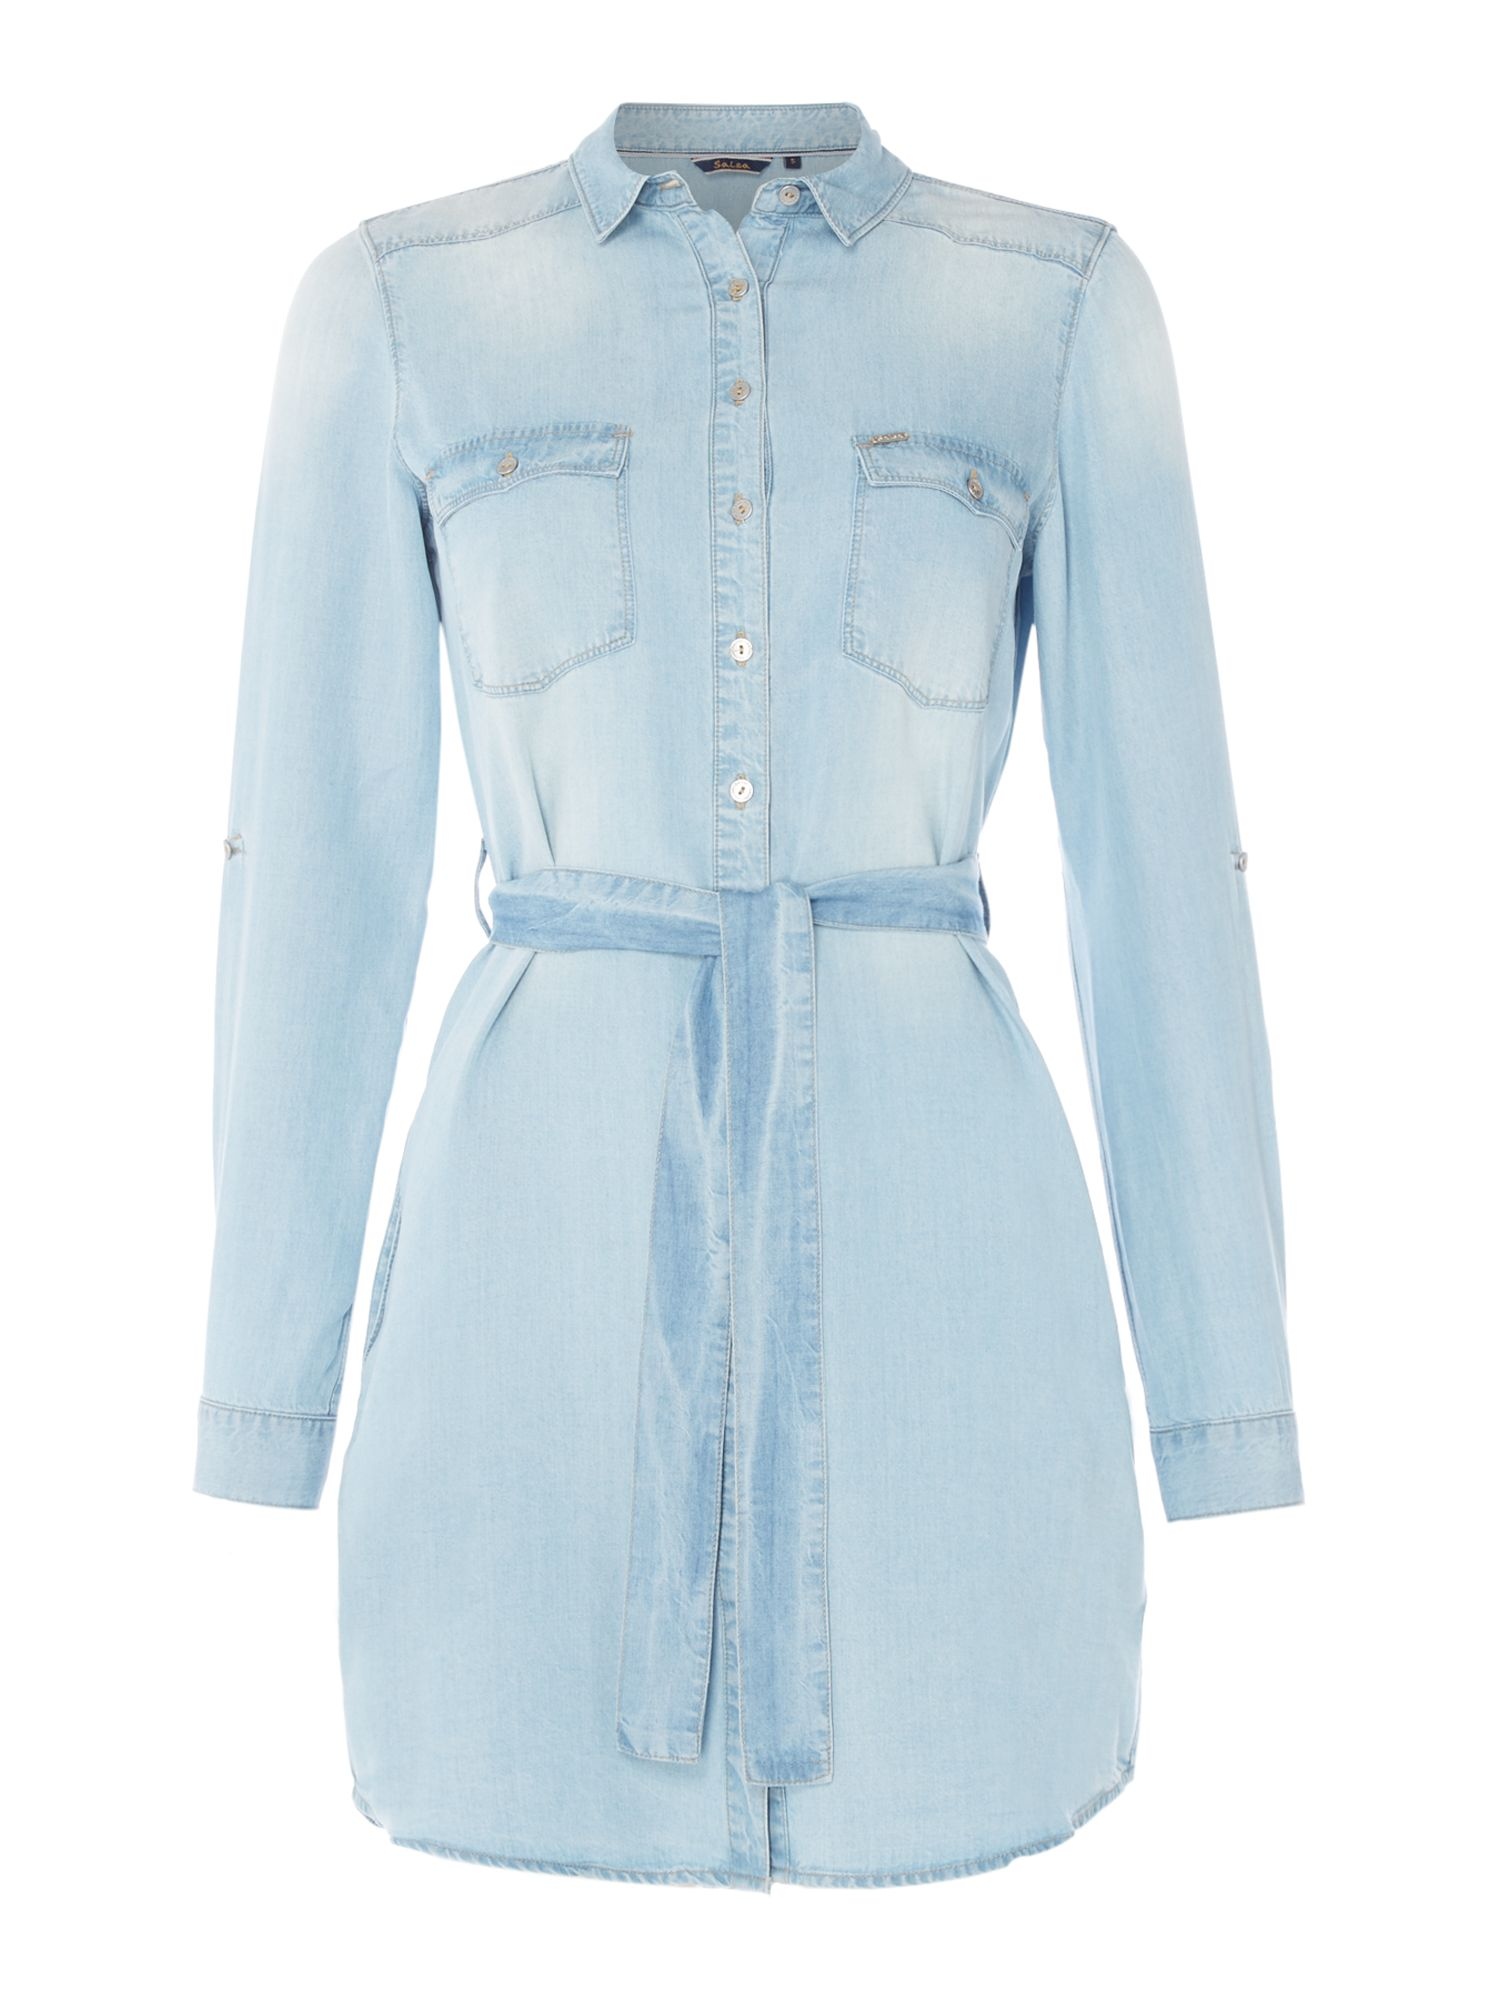 Salsa Denim shirt dress in denim light wash, Denim Light Wash